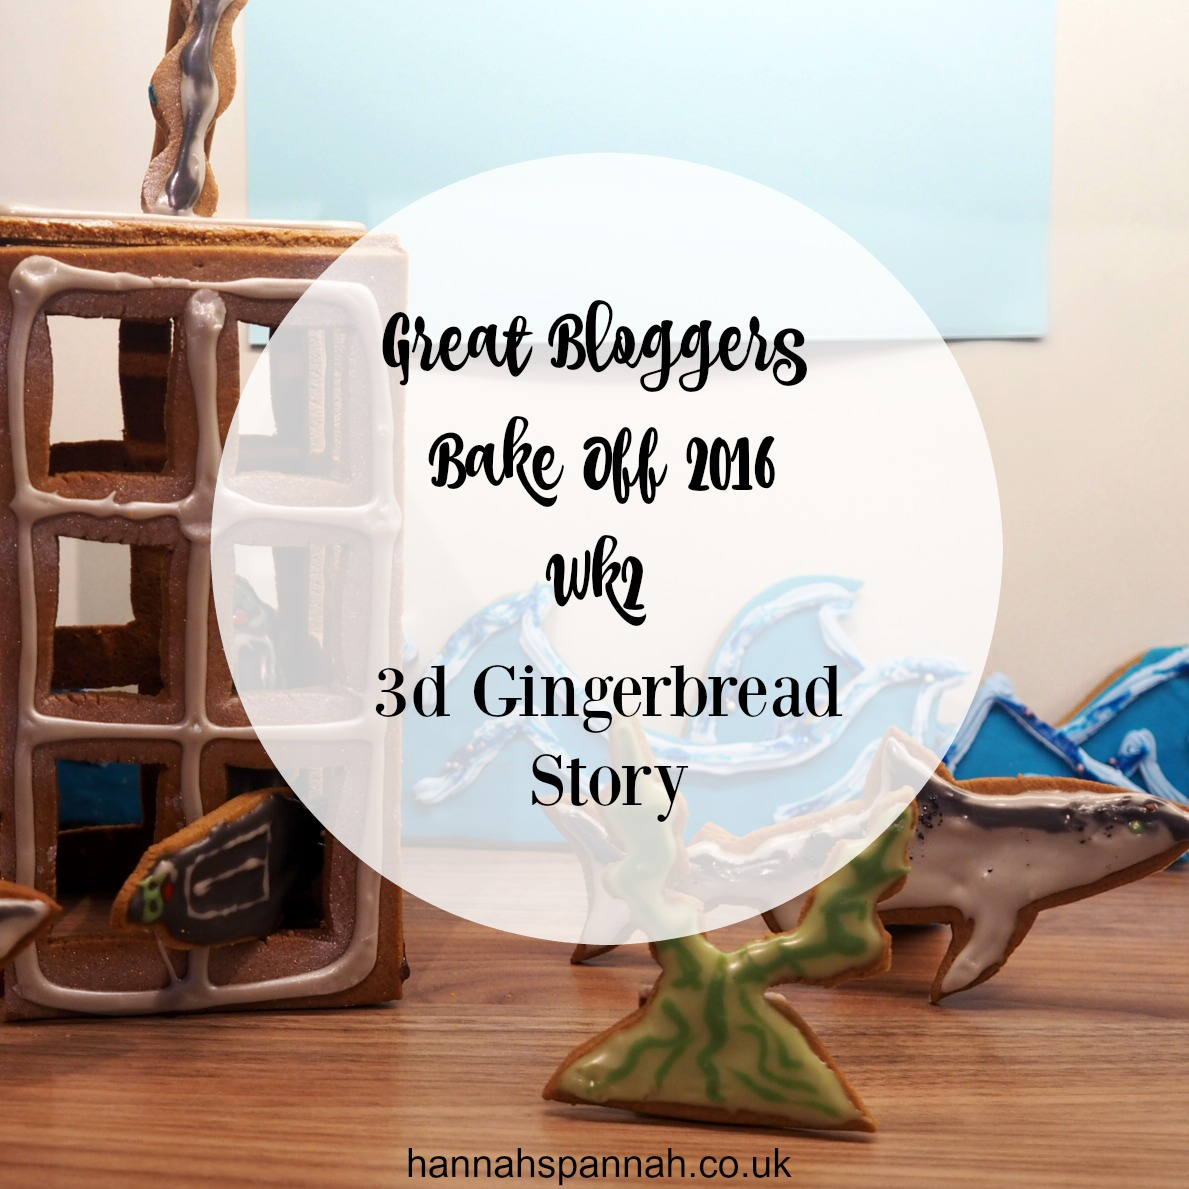 Gingerbread 3d Story